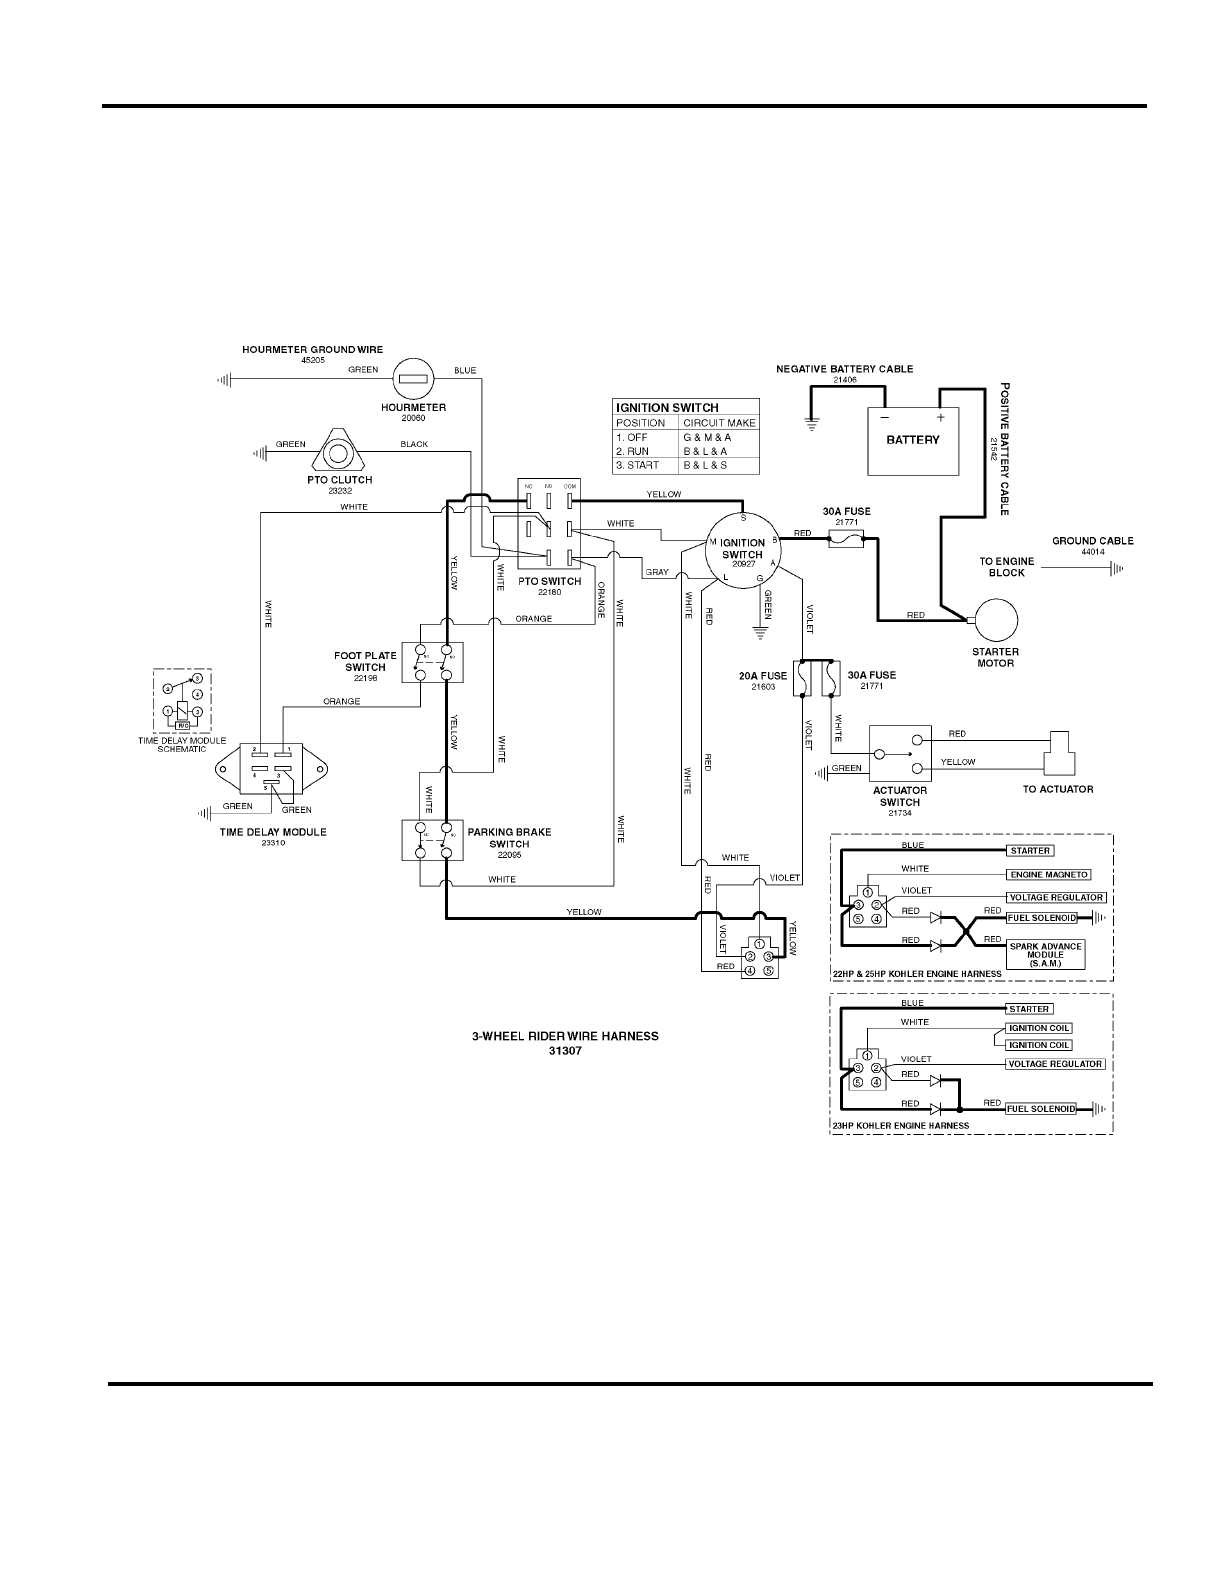 Page 61 of Ferris Industries Lawn Mower 5900227 User Guide